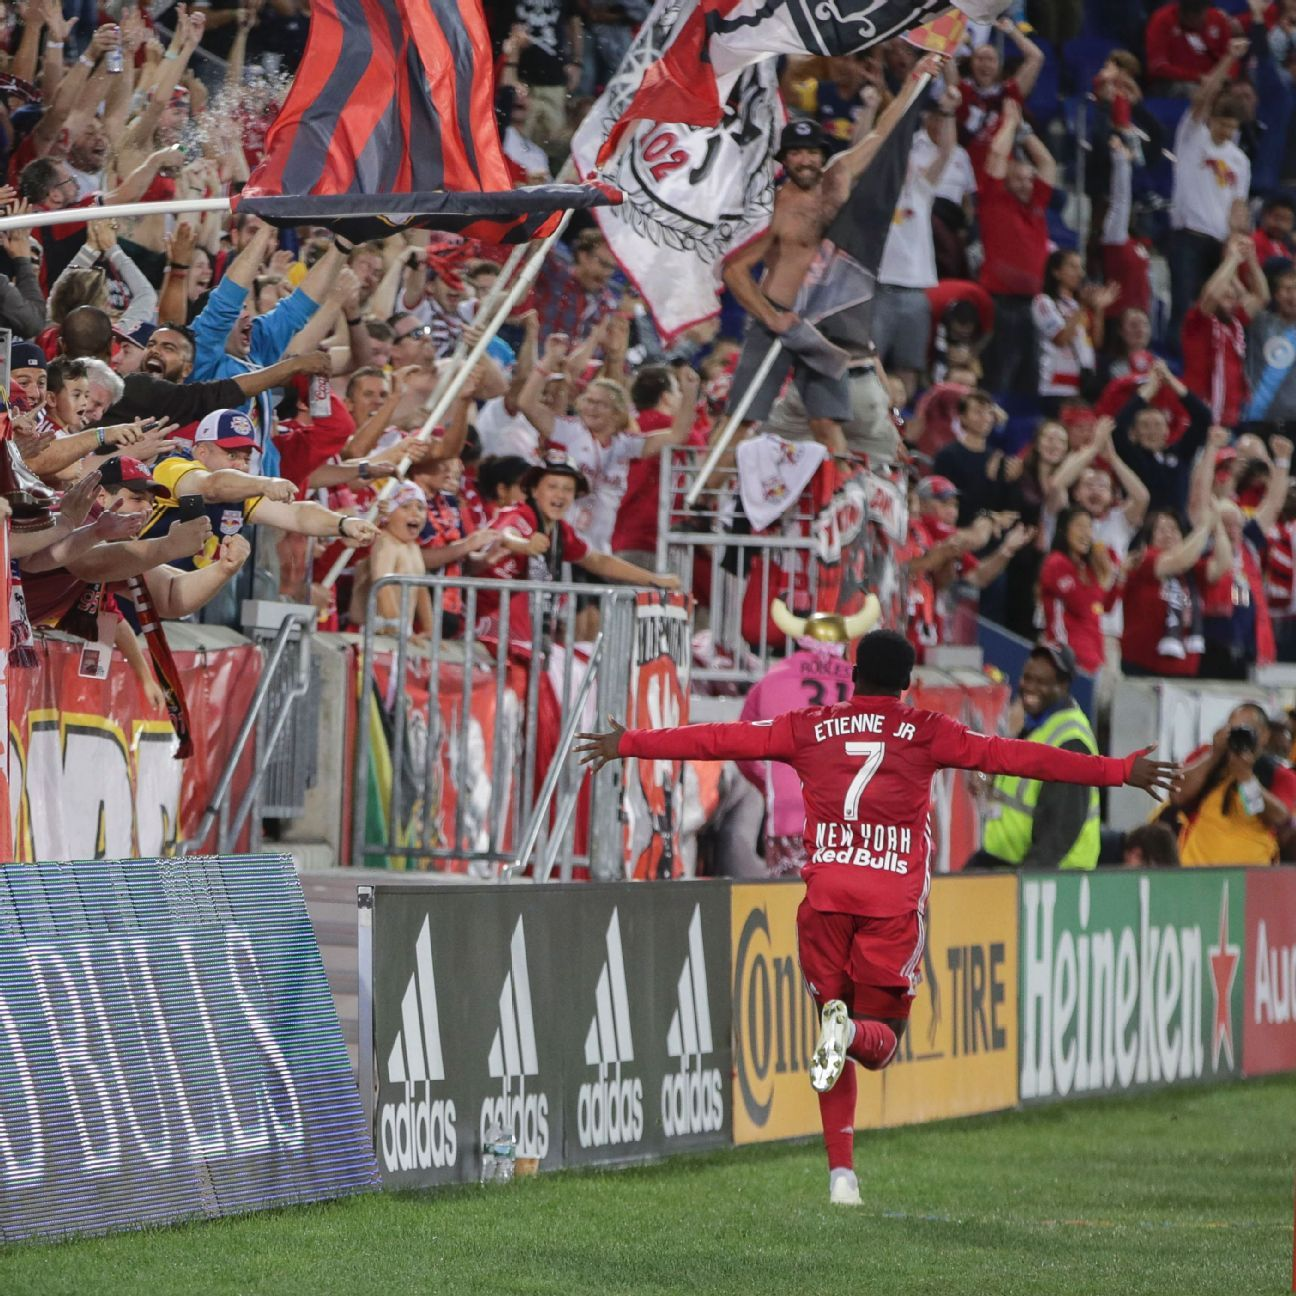 New York Red Bulls further dent Toronto FC's playoff hopes in shutout